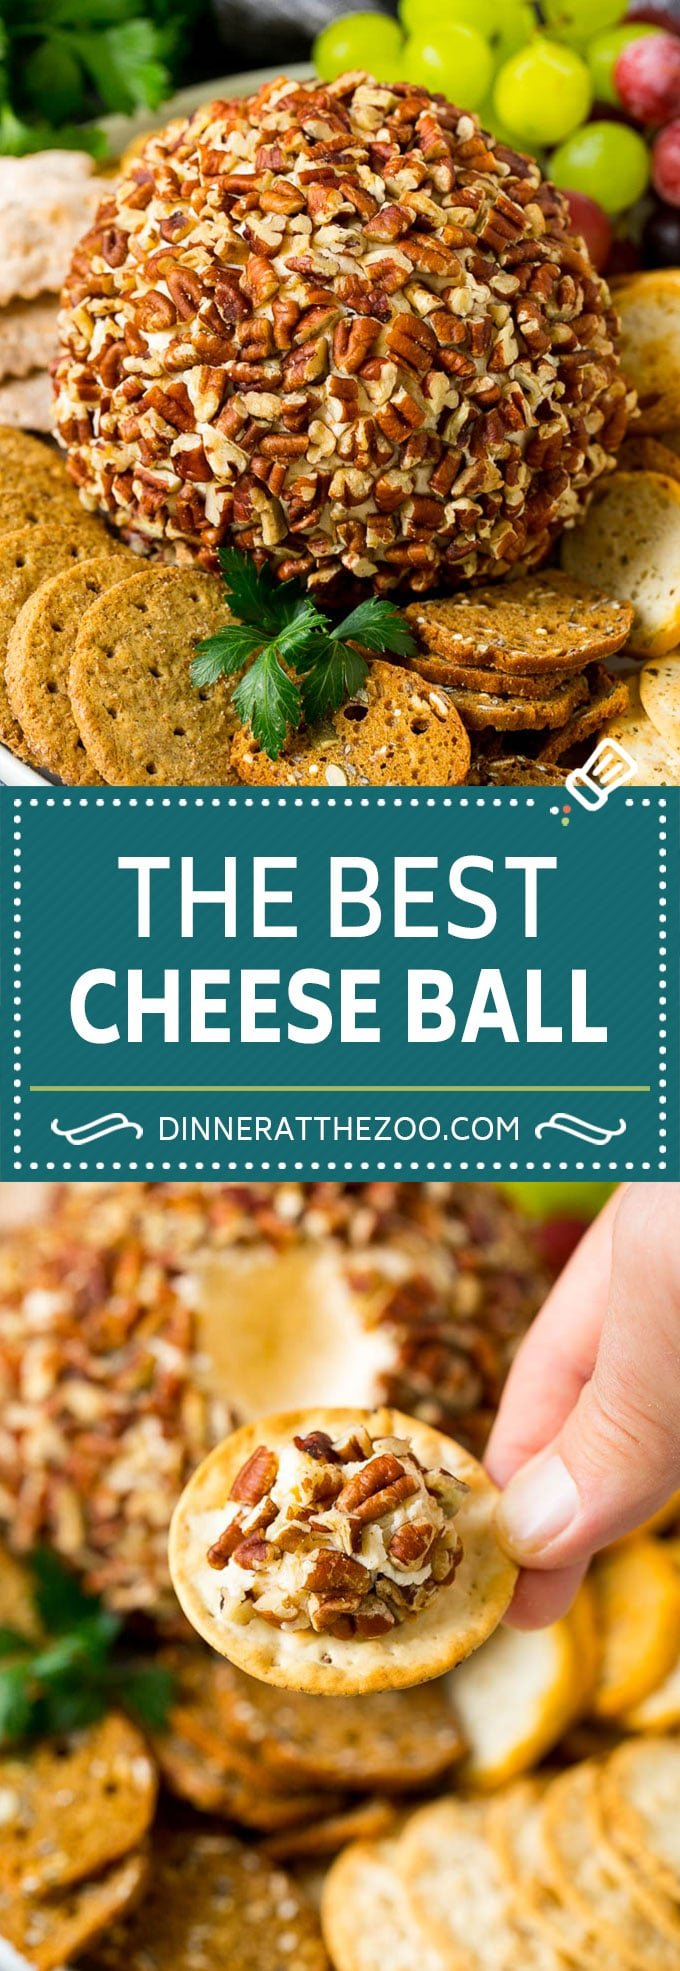 Cheese Ball Recipe #cheese #cheeseball #pecans #appetizer #snack #keto #lowcarb #dinneratthezoo